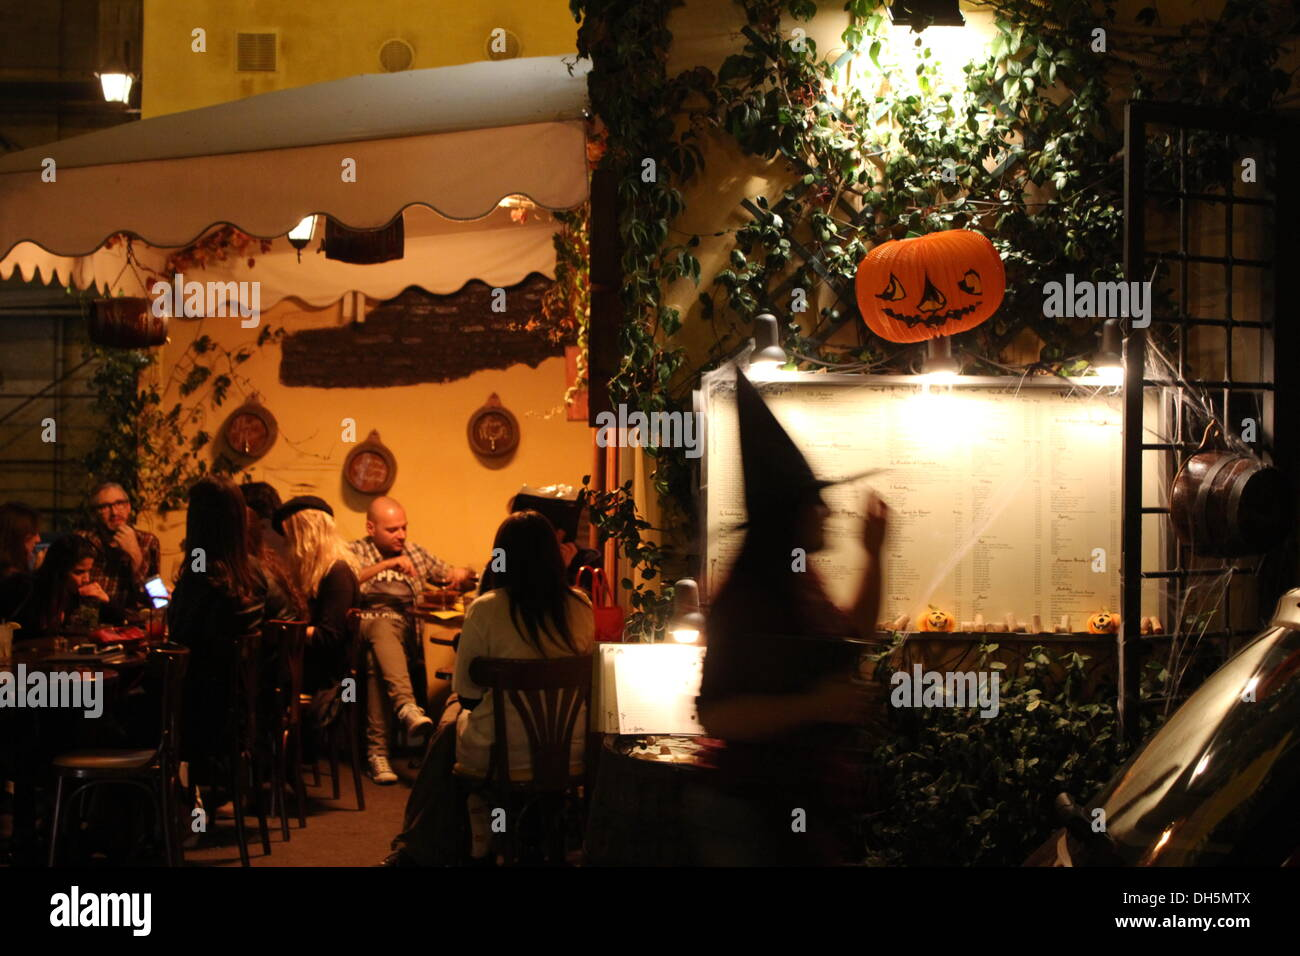 rome italy 31st oct 2013halloween night on the streets of trastevere in rome italy credit gari wyn williamsalamy live news